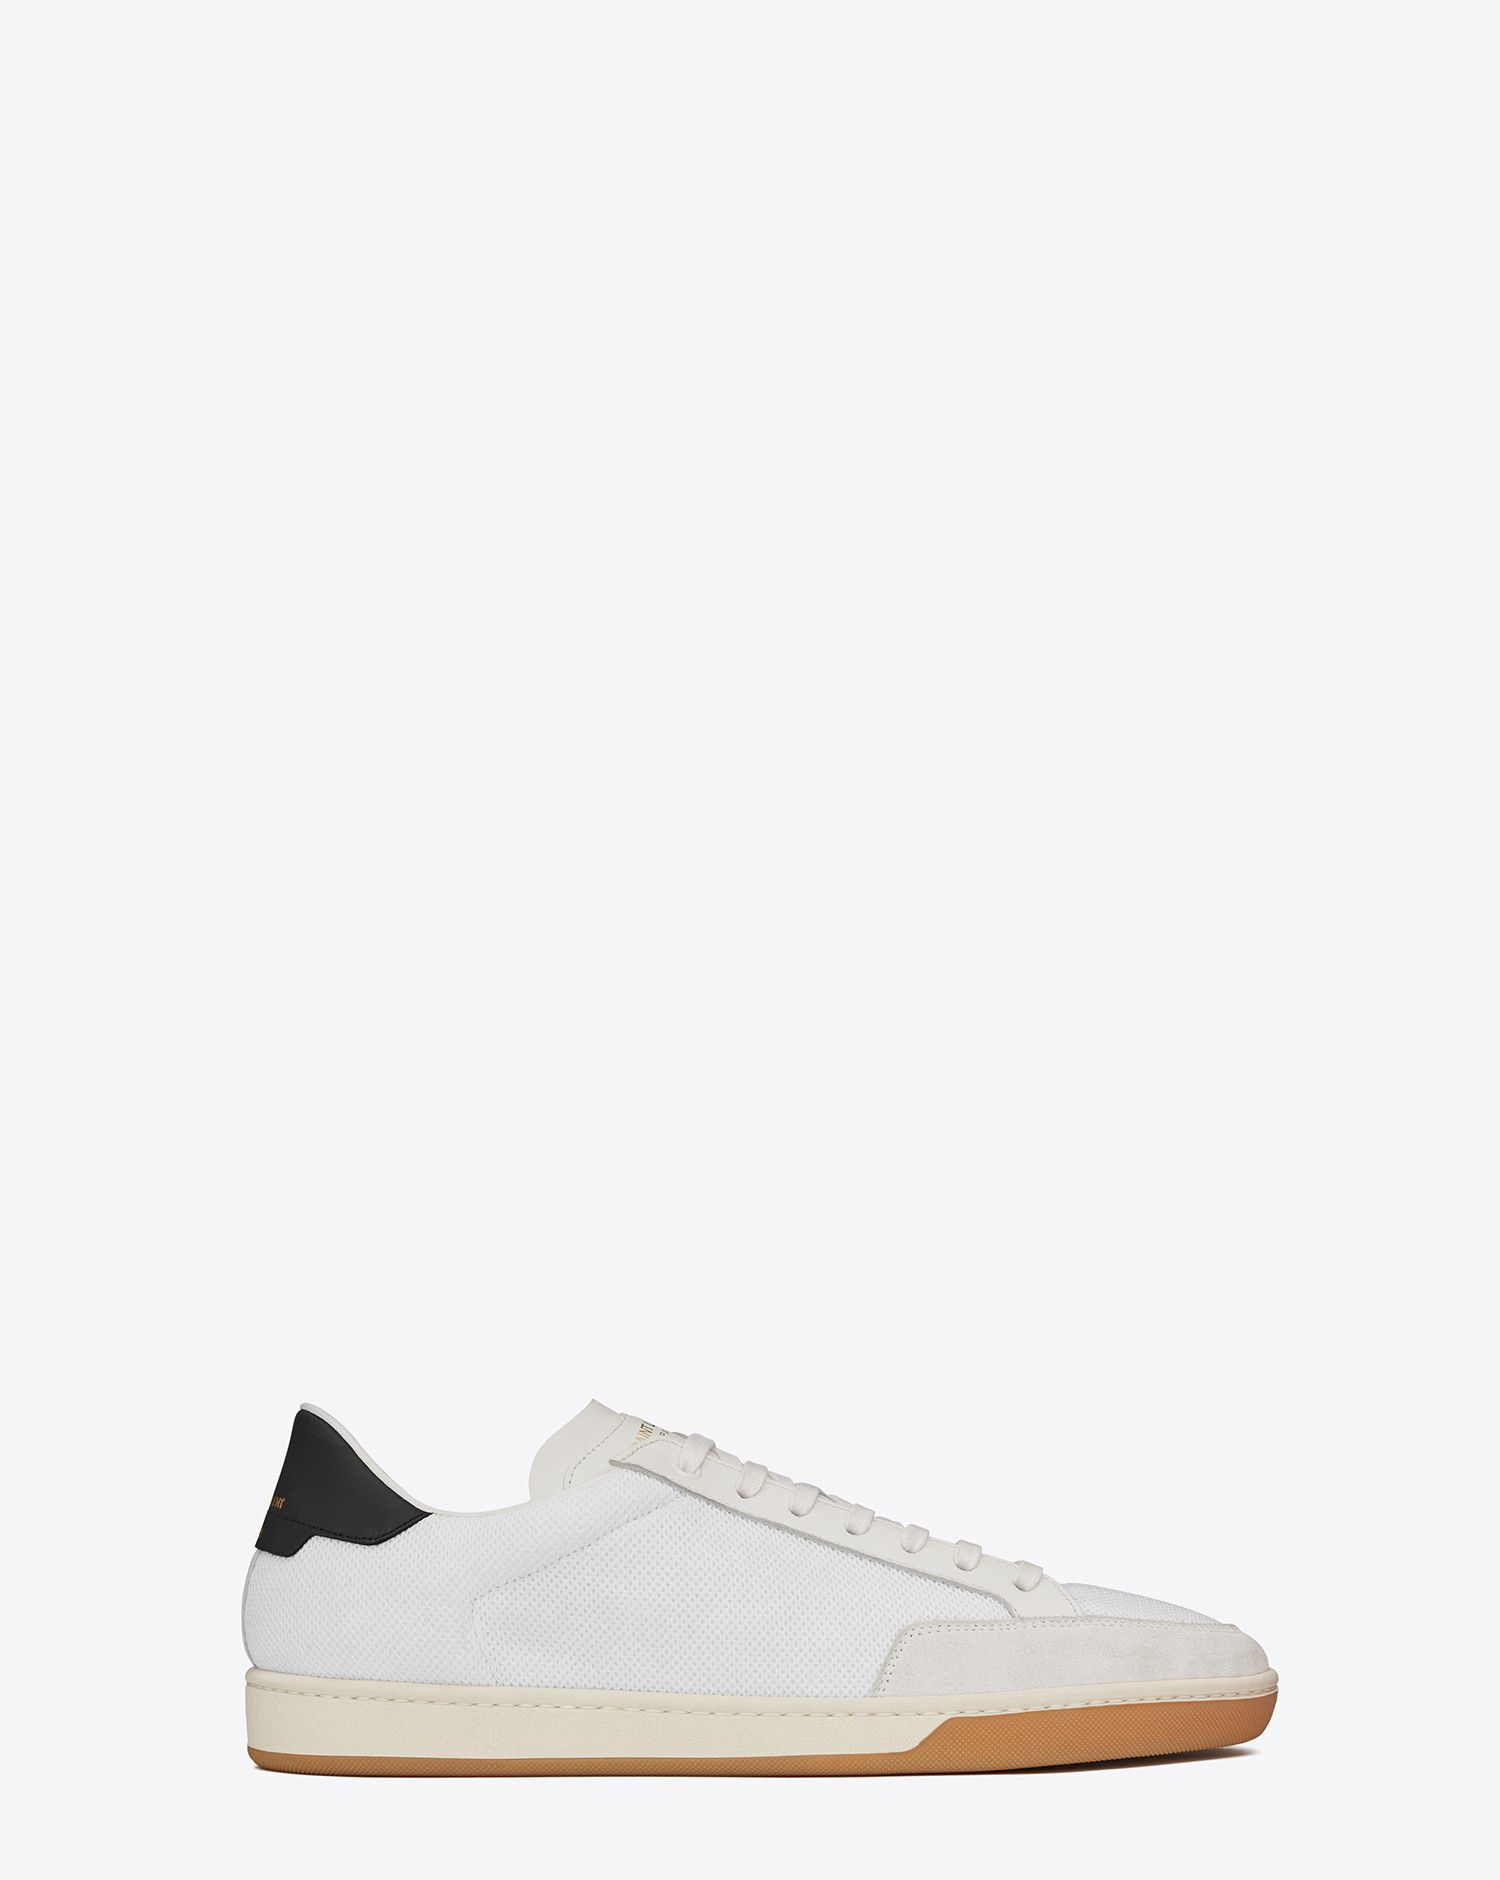 08162d44a76 Saint Laurent SIGNATURE COURT CLASSIC SL/30 SNEAKER IN Powder White Suede,  White FABRIC